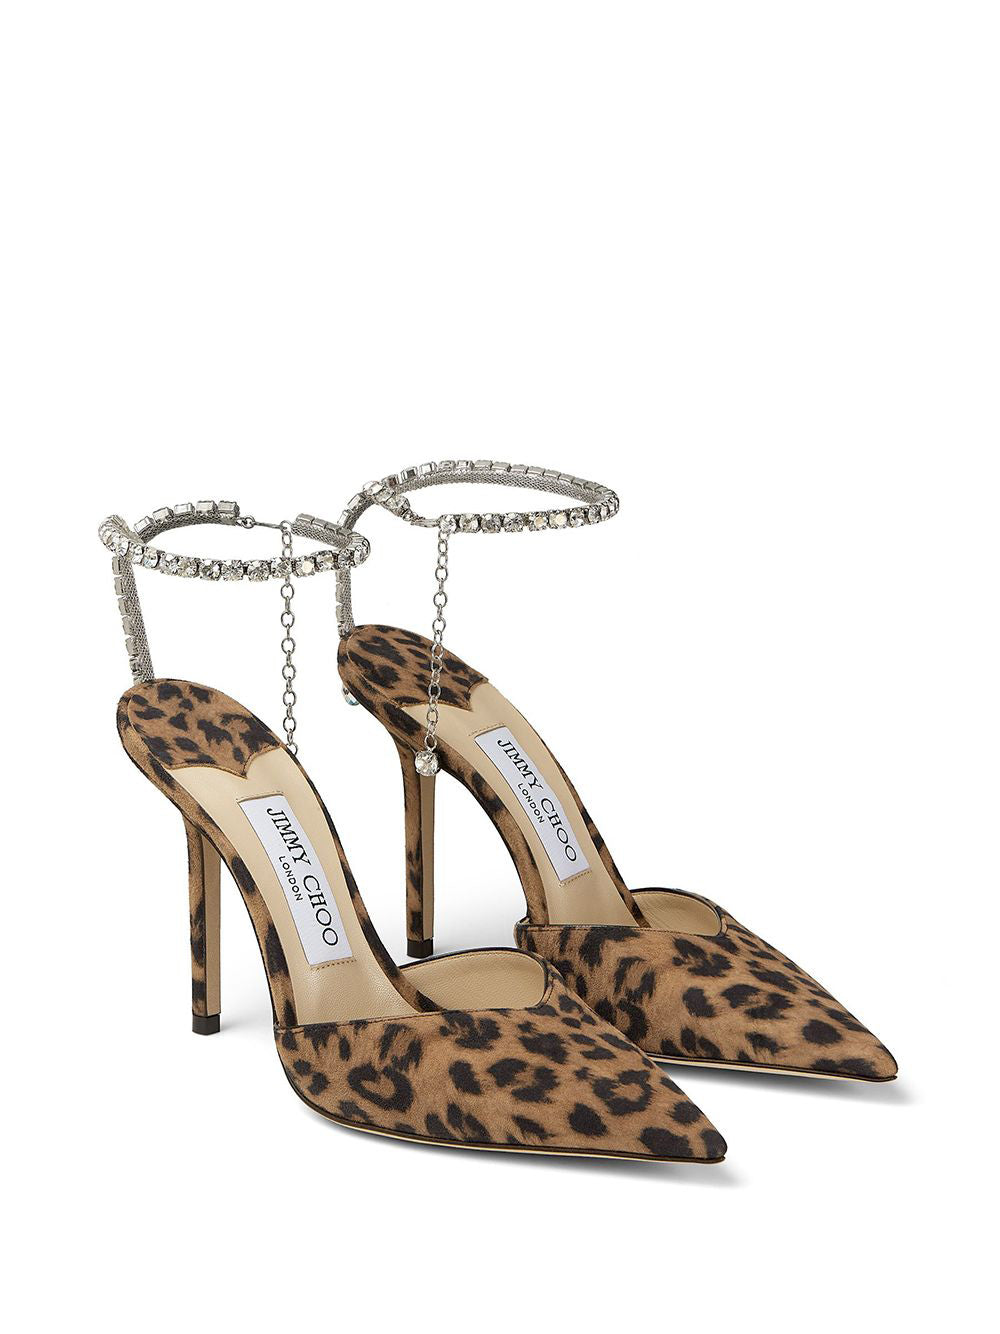 Saeda 100mm Leopard Print Pumps